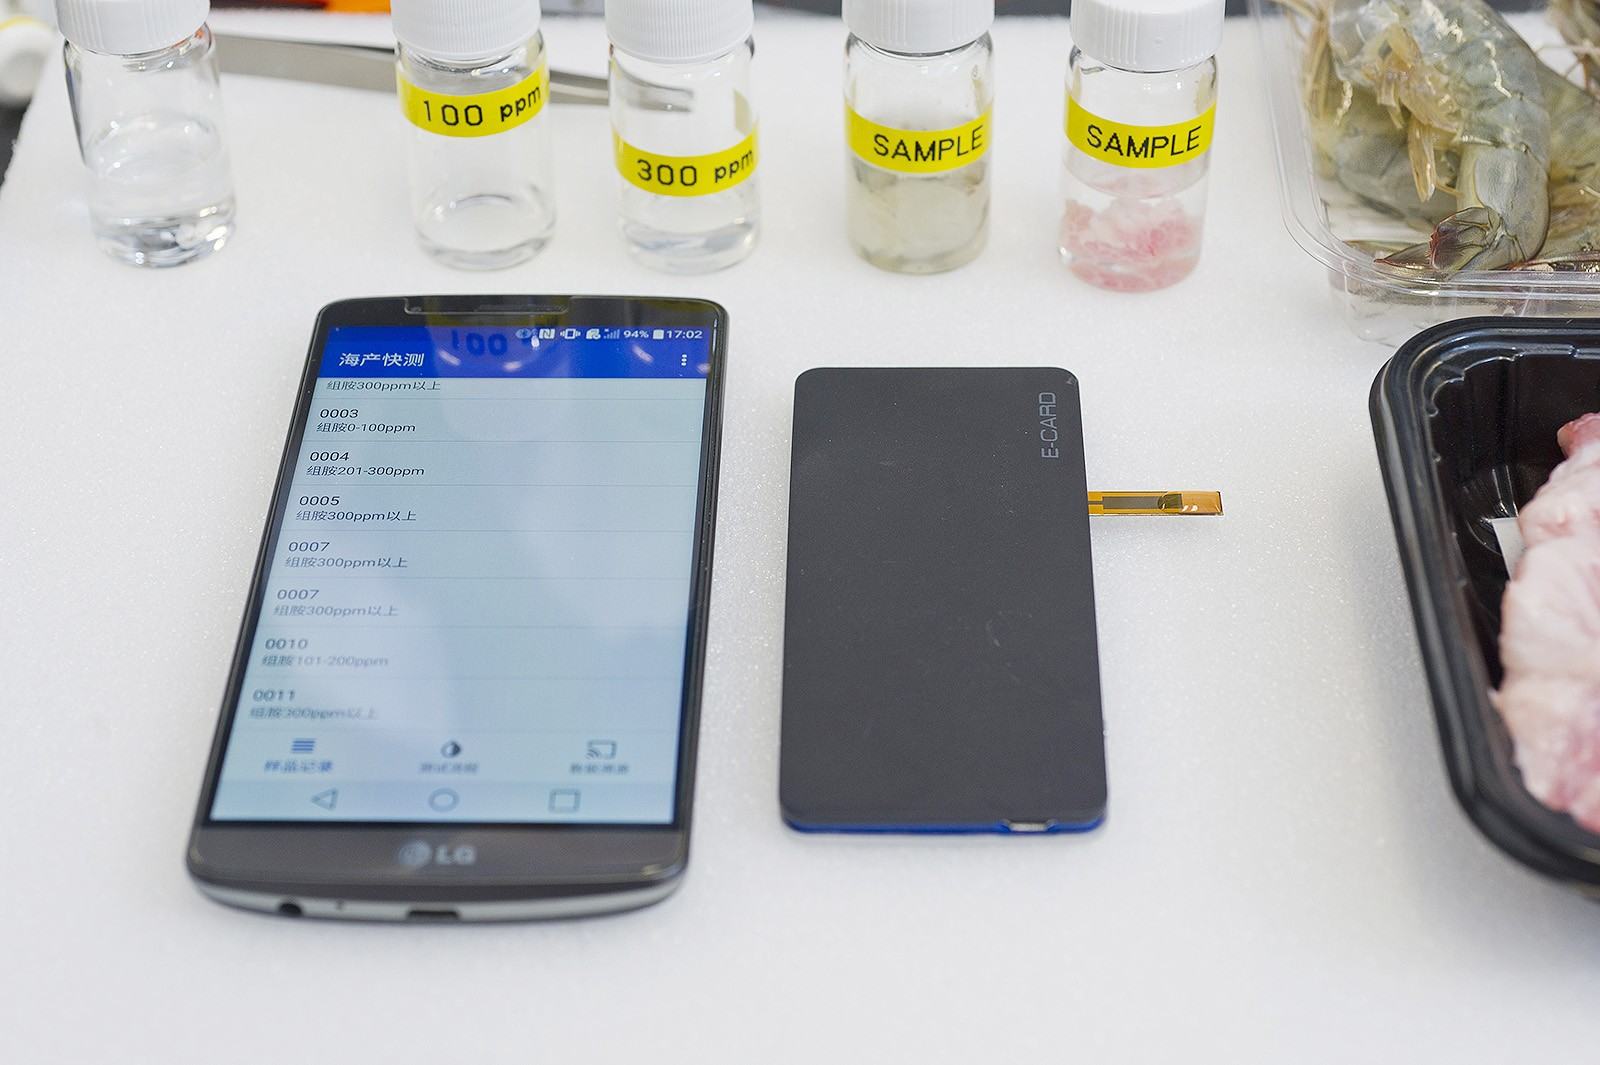 The sensor can rapidly detect food samples using a mobile phone.